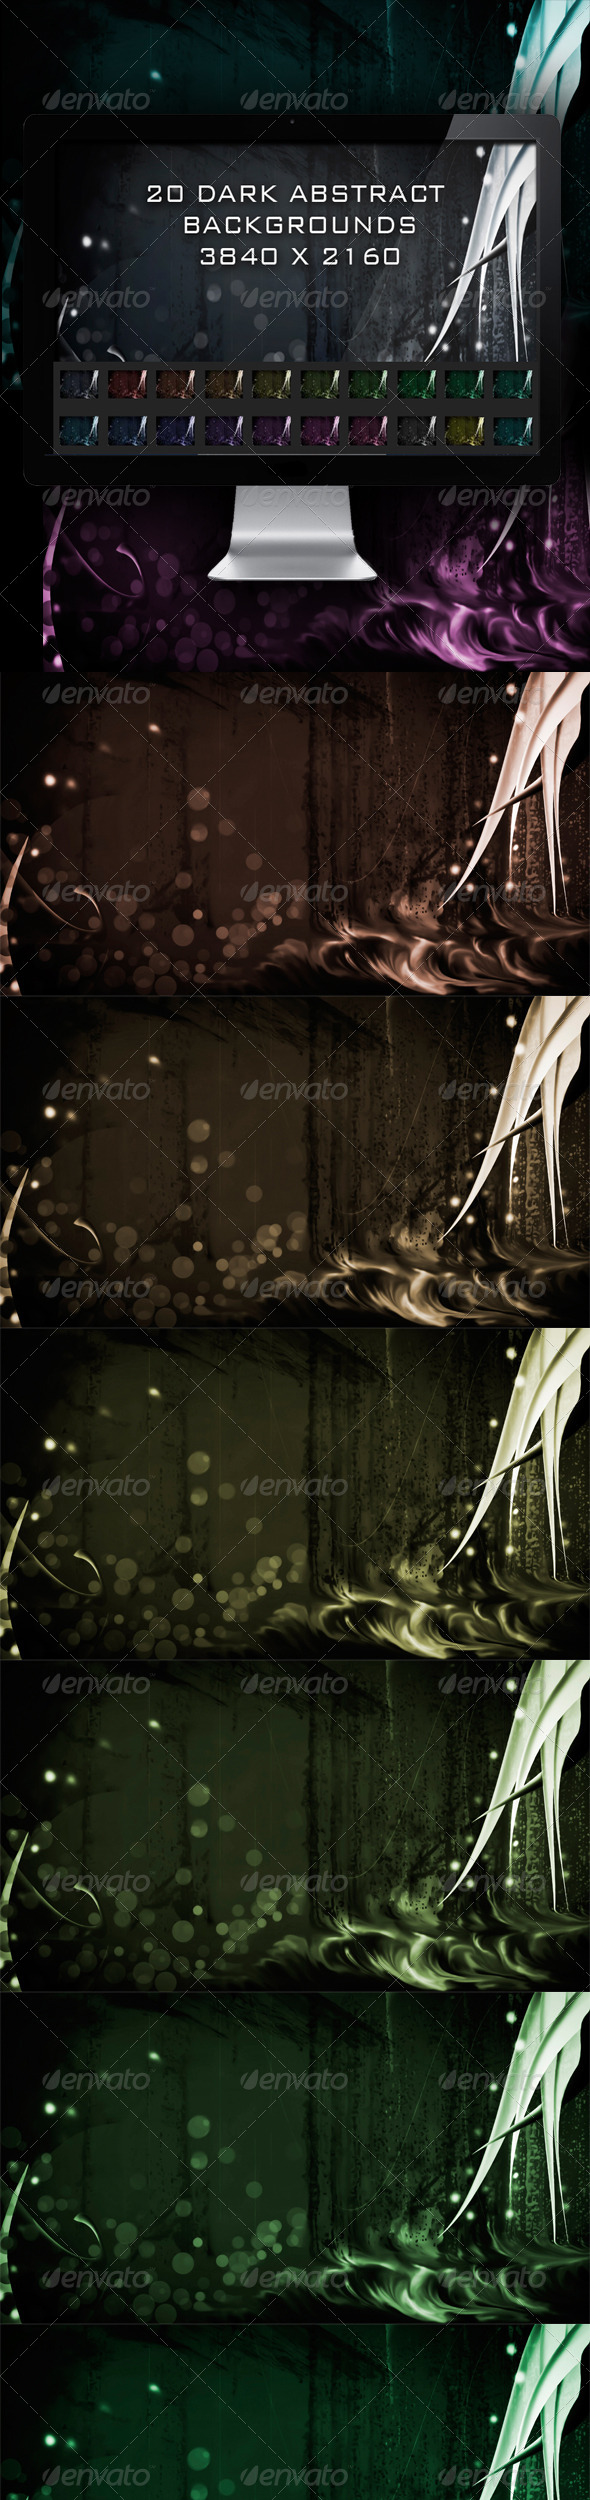 GraphicRiver 20 Dark Abstract Backgrounds 4809374